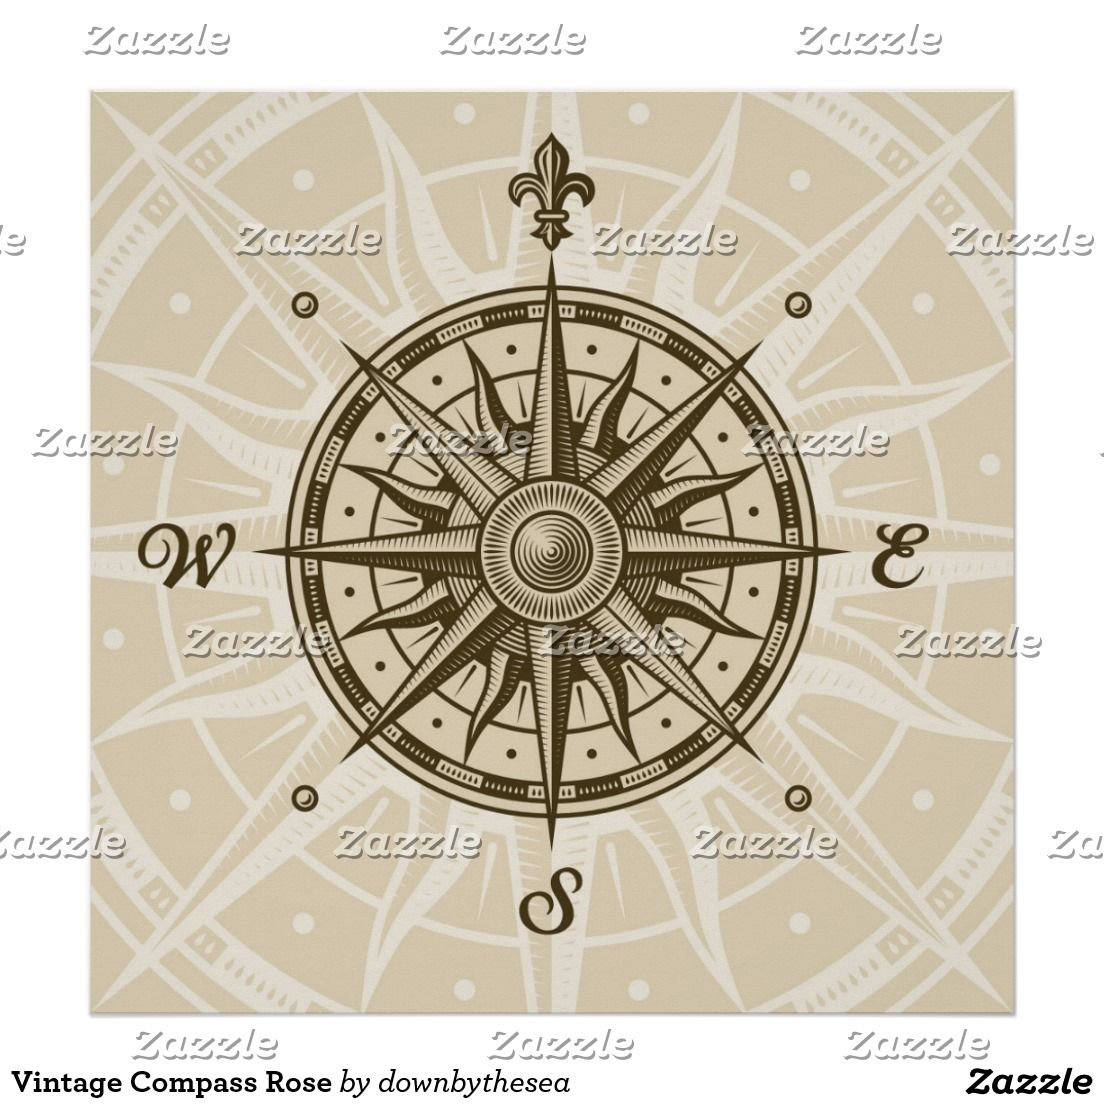 Vintage Compass Rose Poster Zazzle Com In 2020 Compass Rose Tattoo Vintage Compass Tattoo Vintage Compass